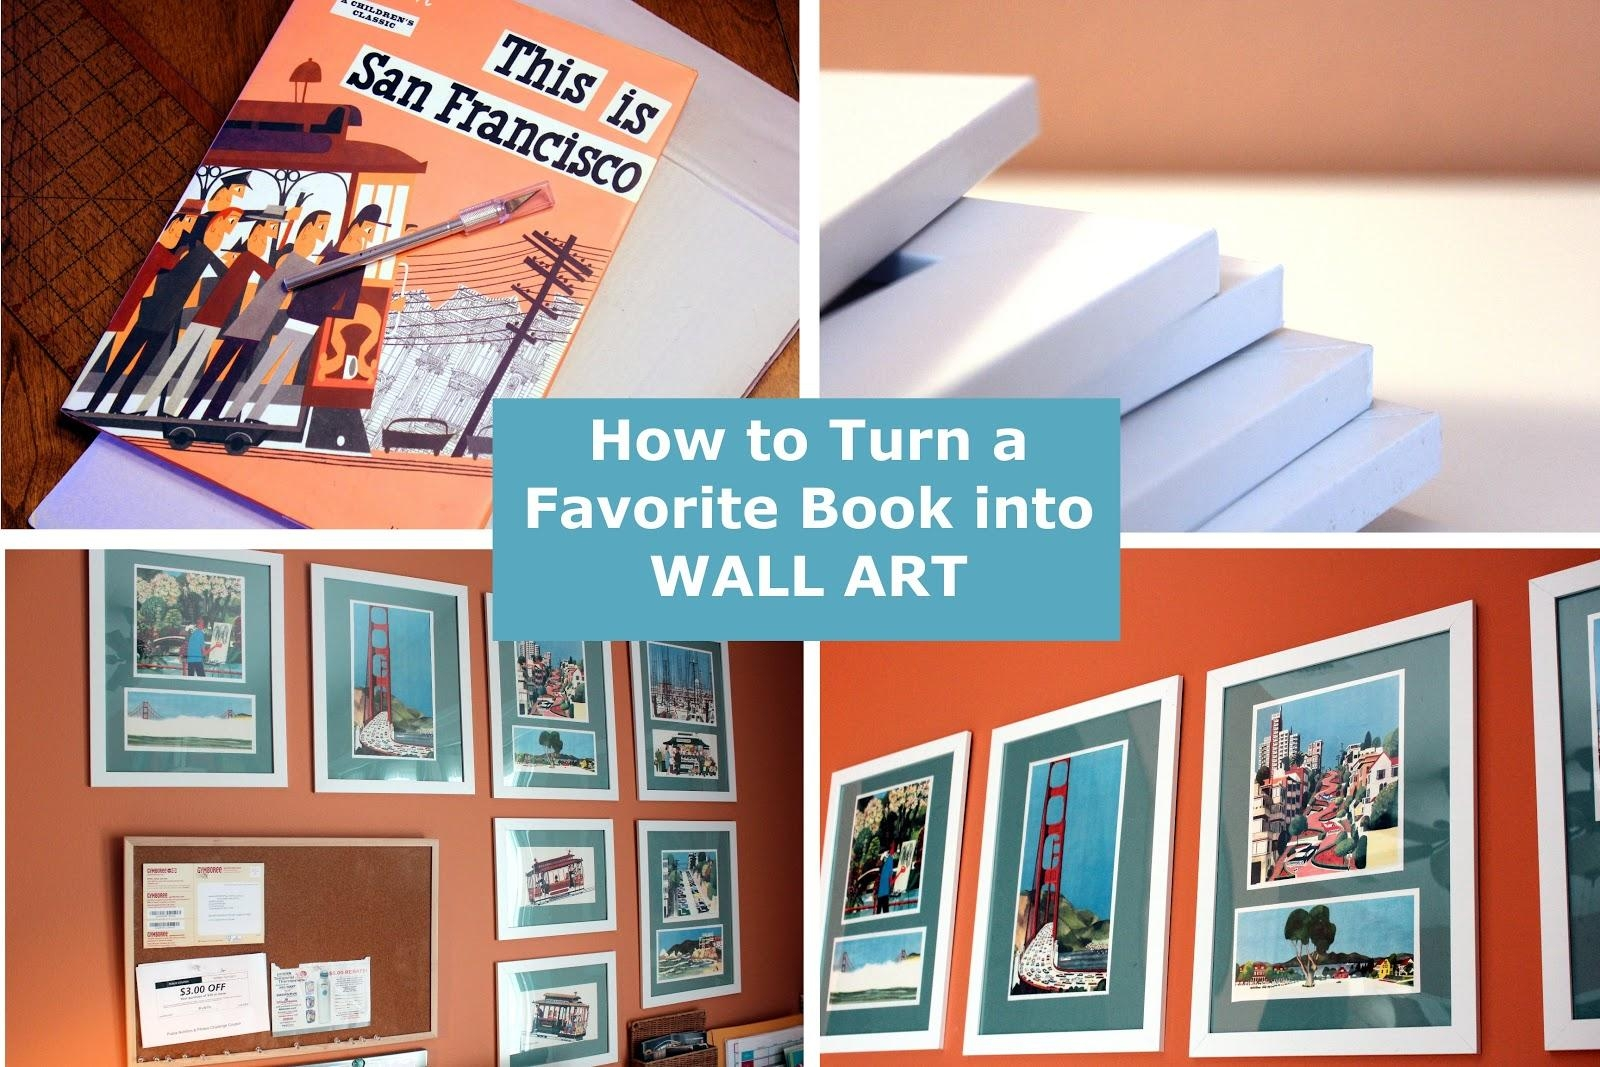 How To Turn A Book Into Wall Art – See Mommy Doing Throughout Turn Pictures Into Wall Art (View 3 of 20)